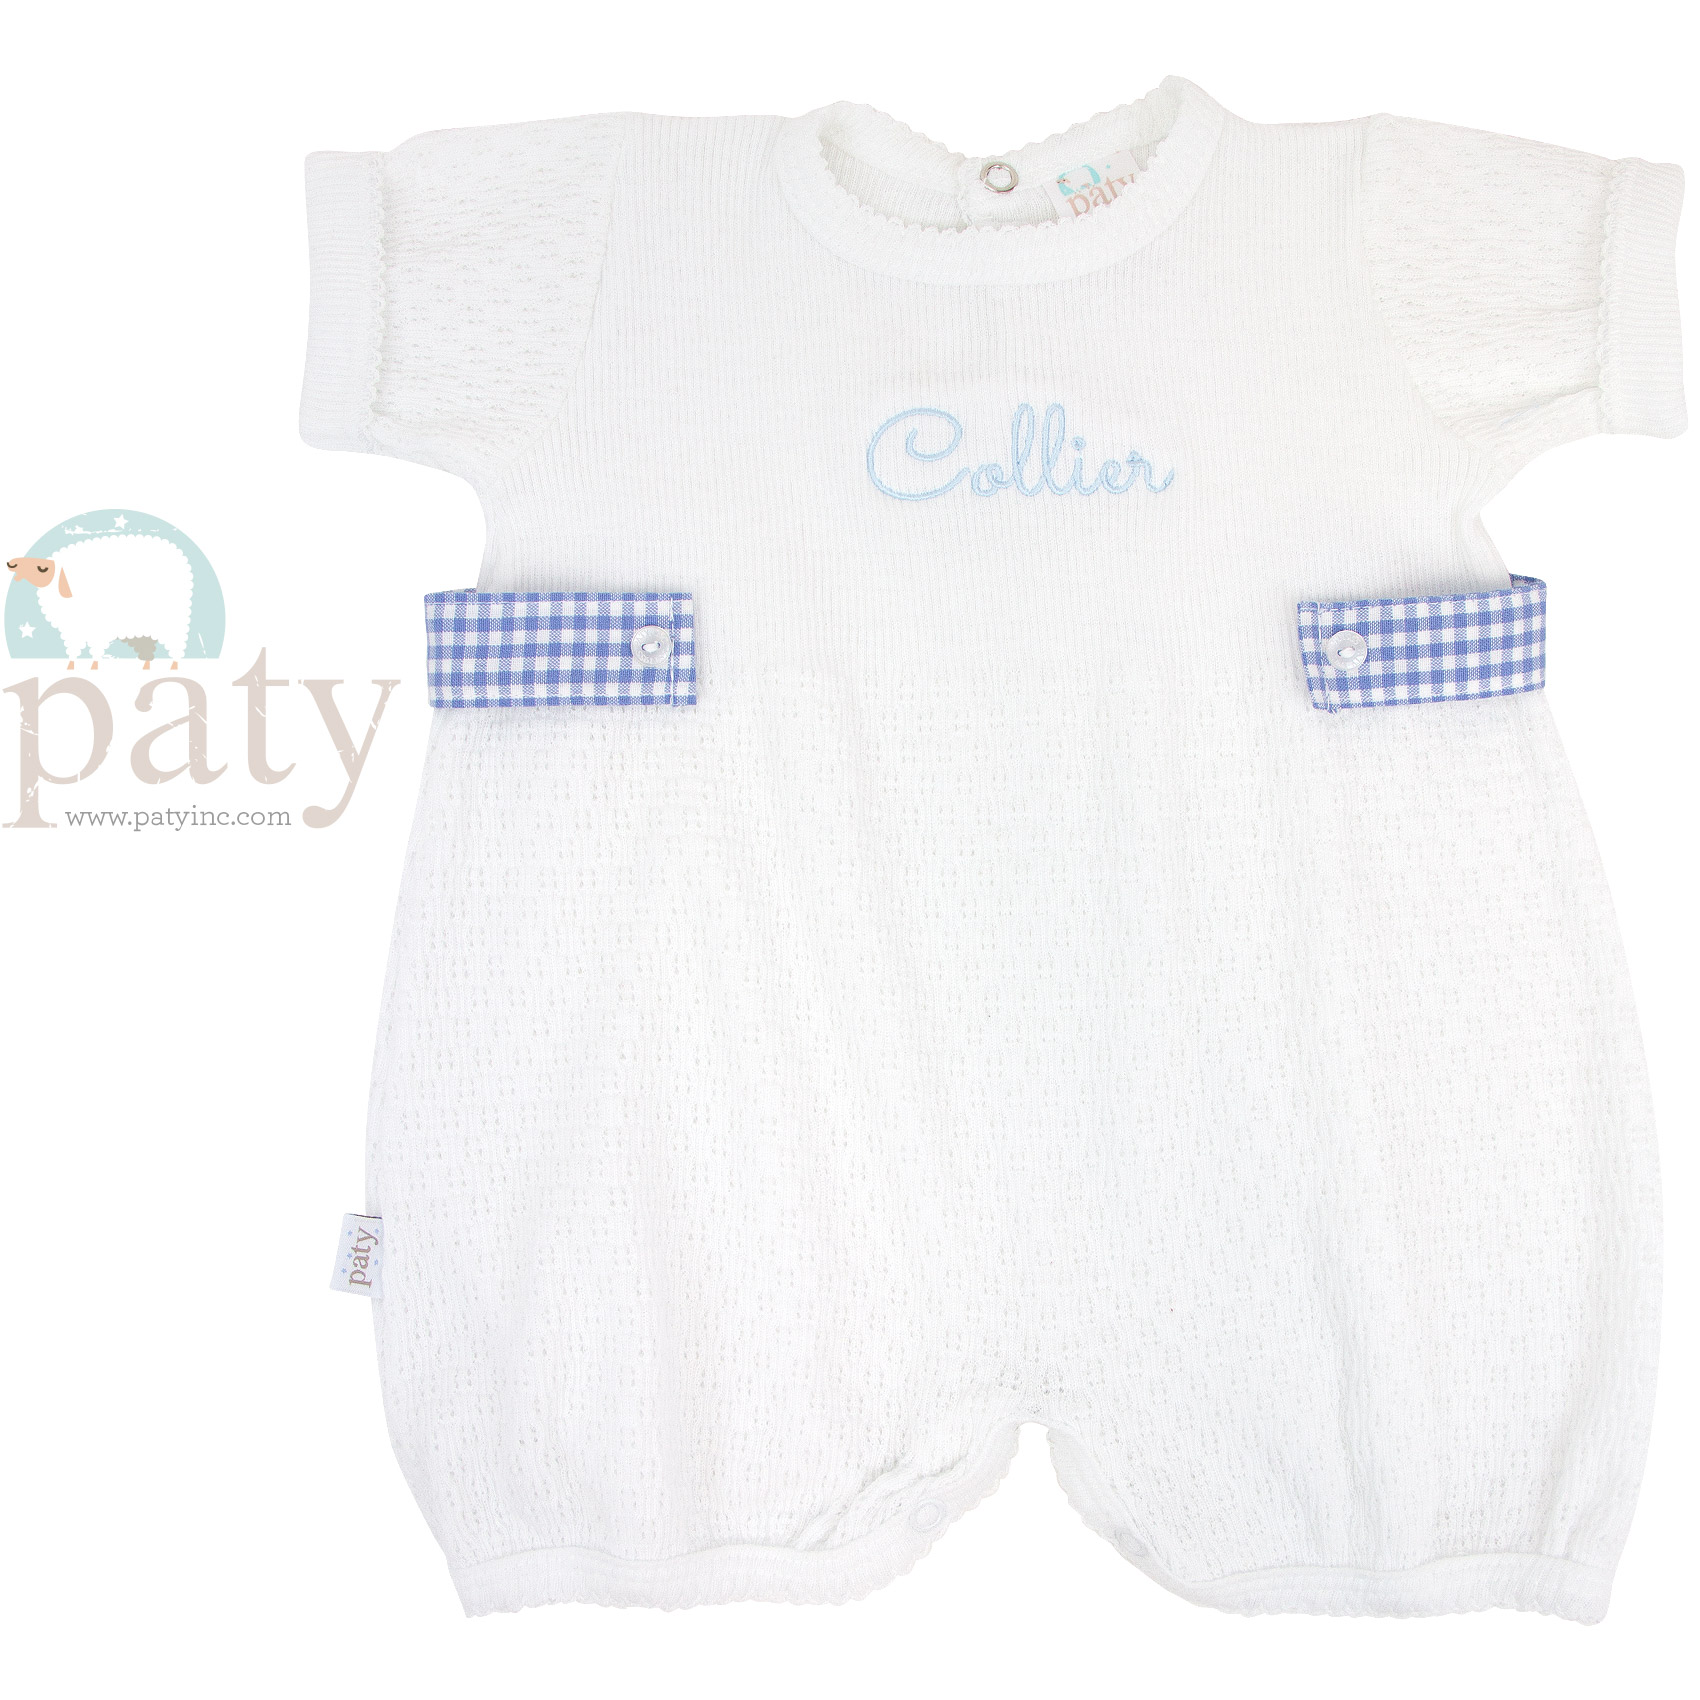 Monogrammed Paty Bubble